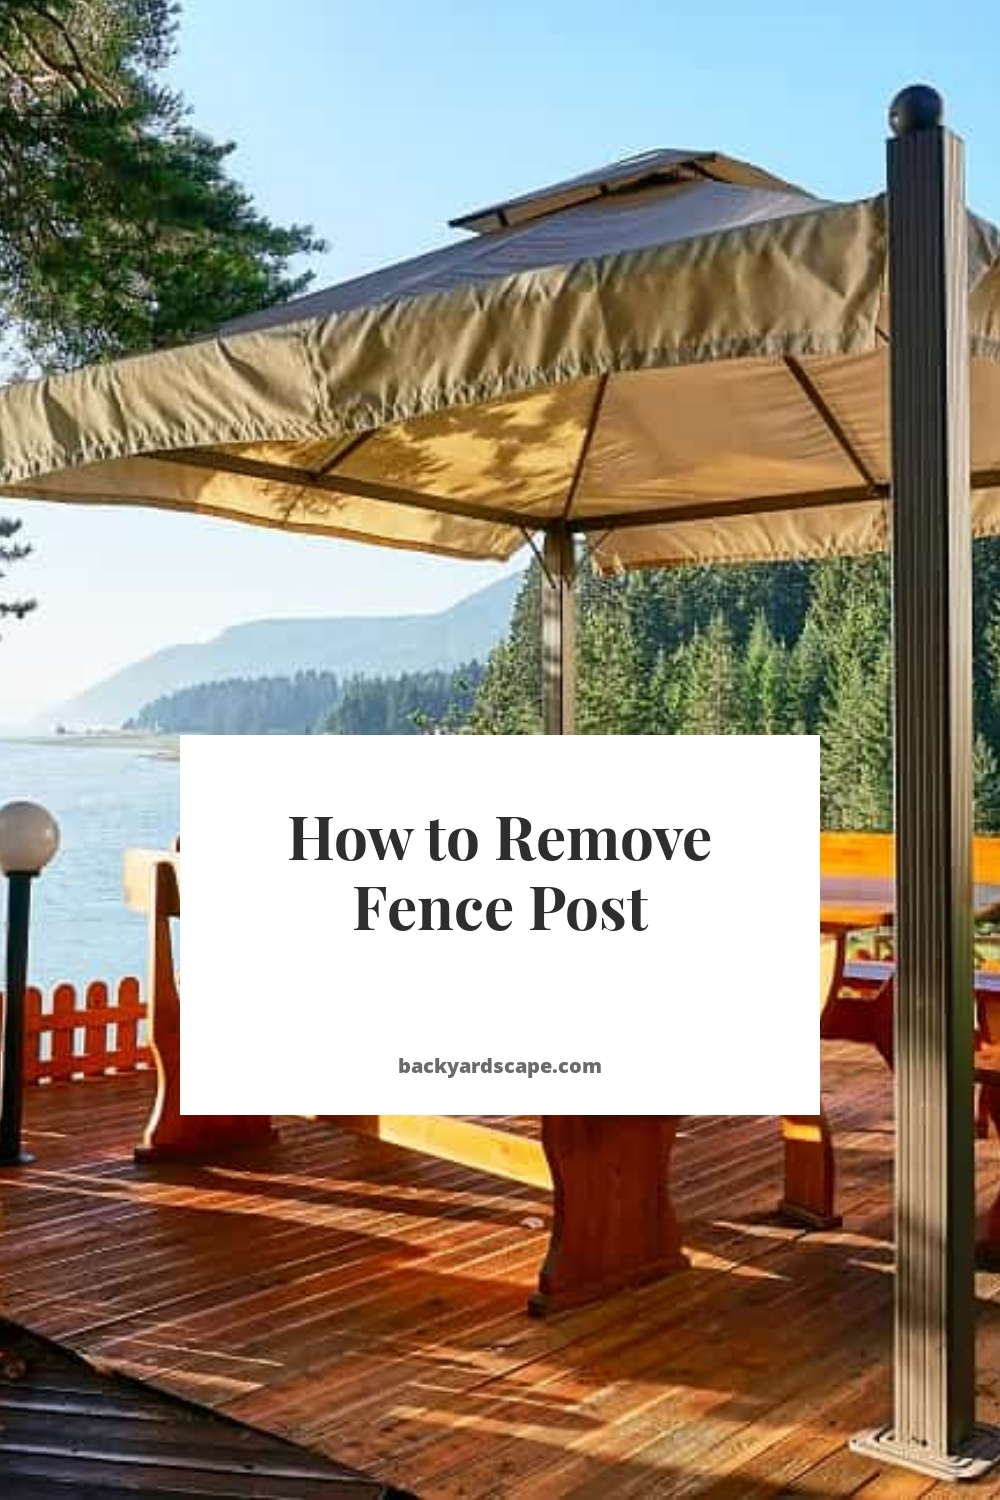 How to Remove Fence Post